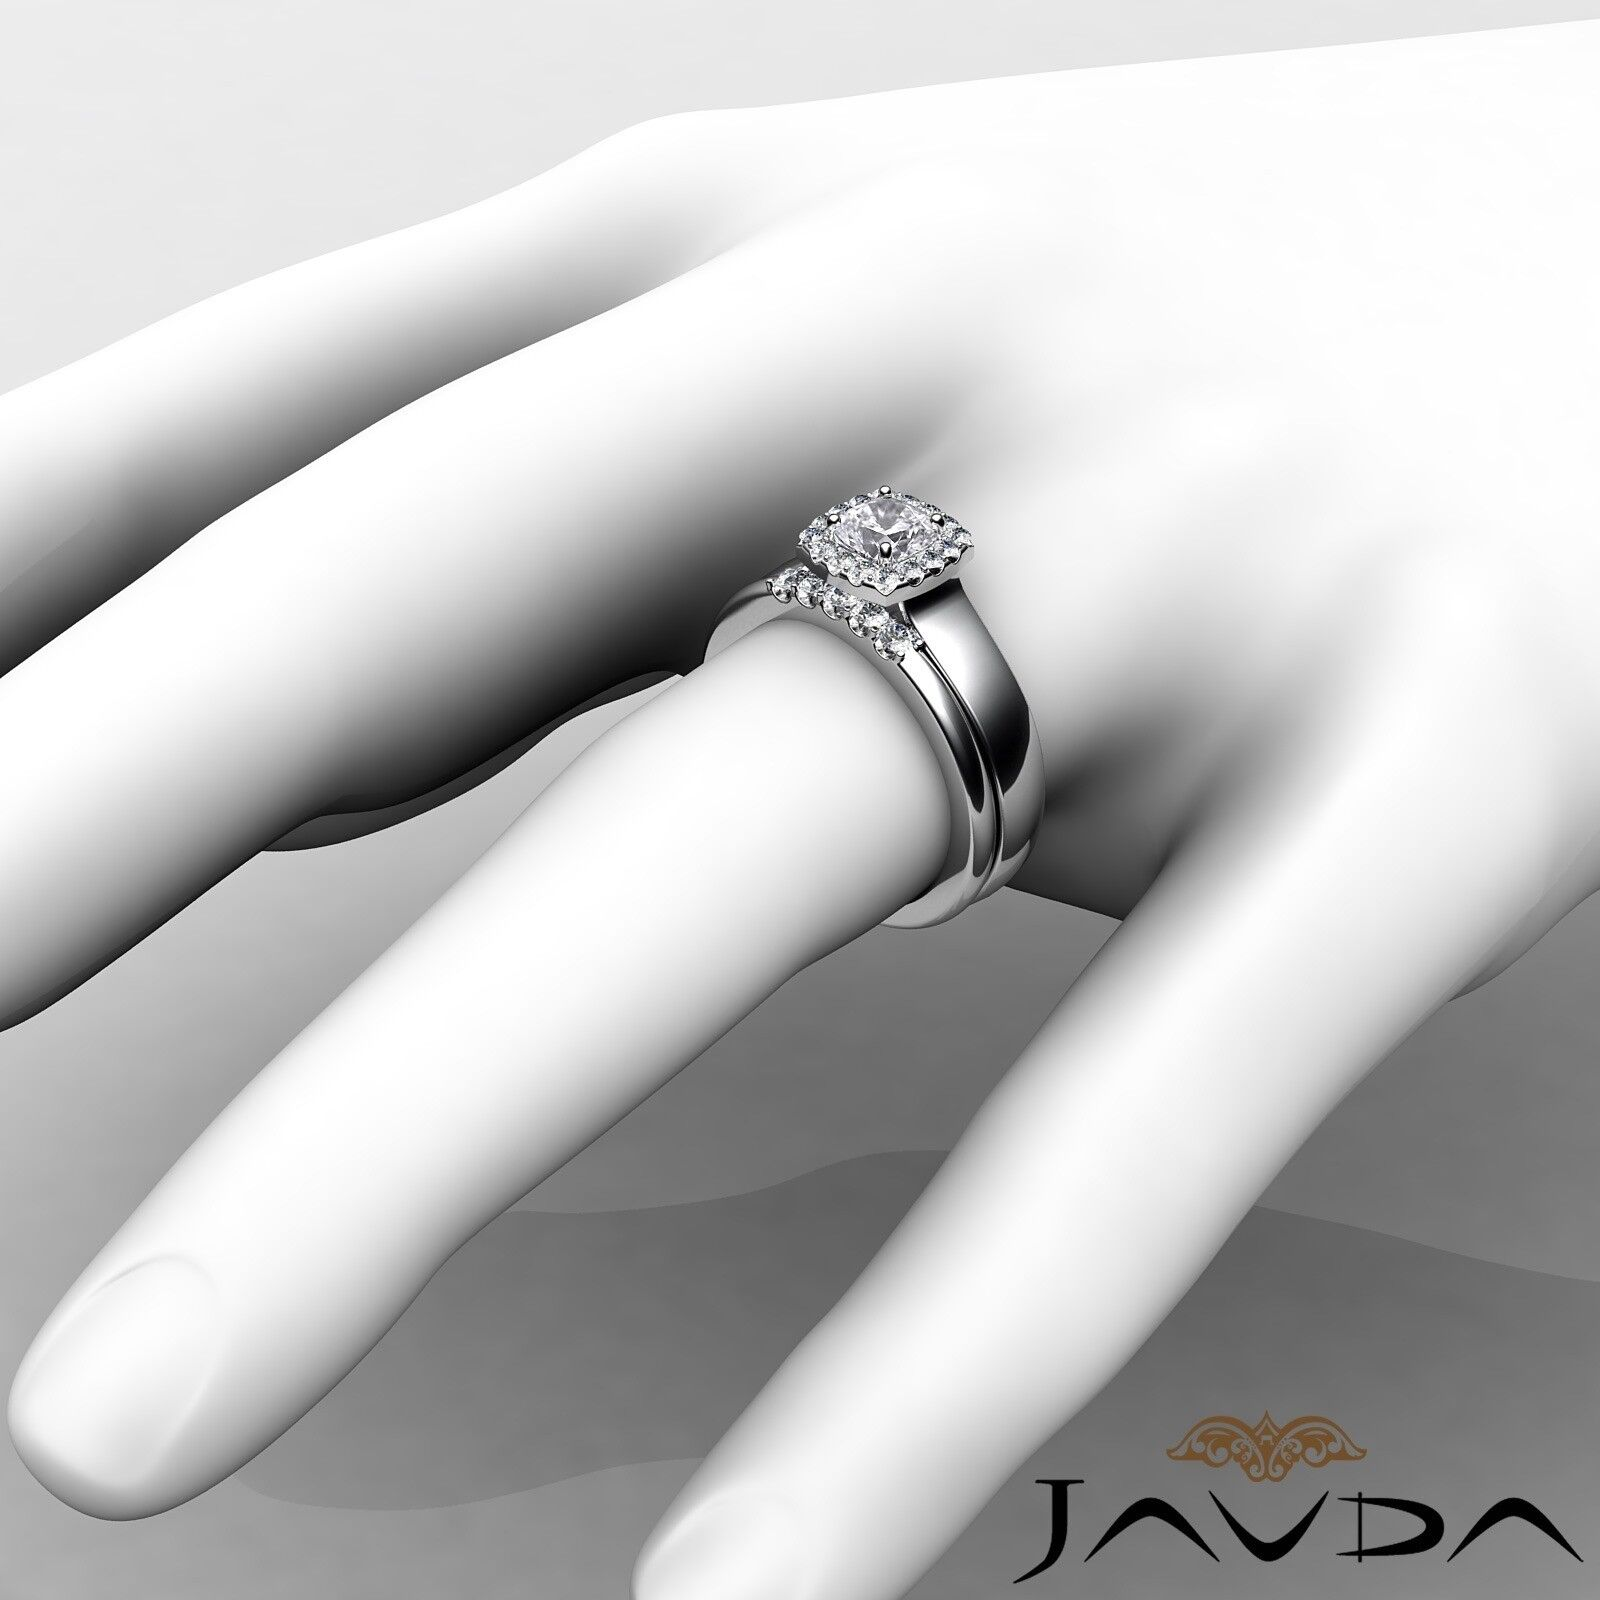 1.04ctw Solitaire Halo Bridal Cushion Diamond Engagement Ring GIA H-VS2 W Gold 4